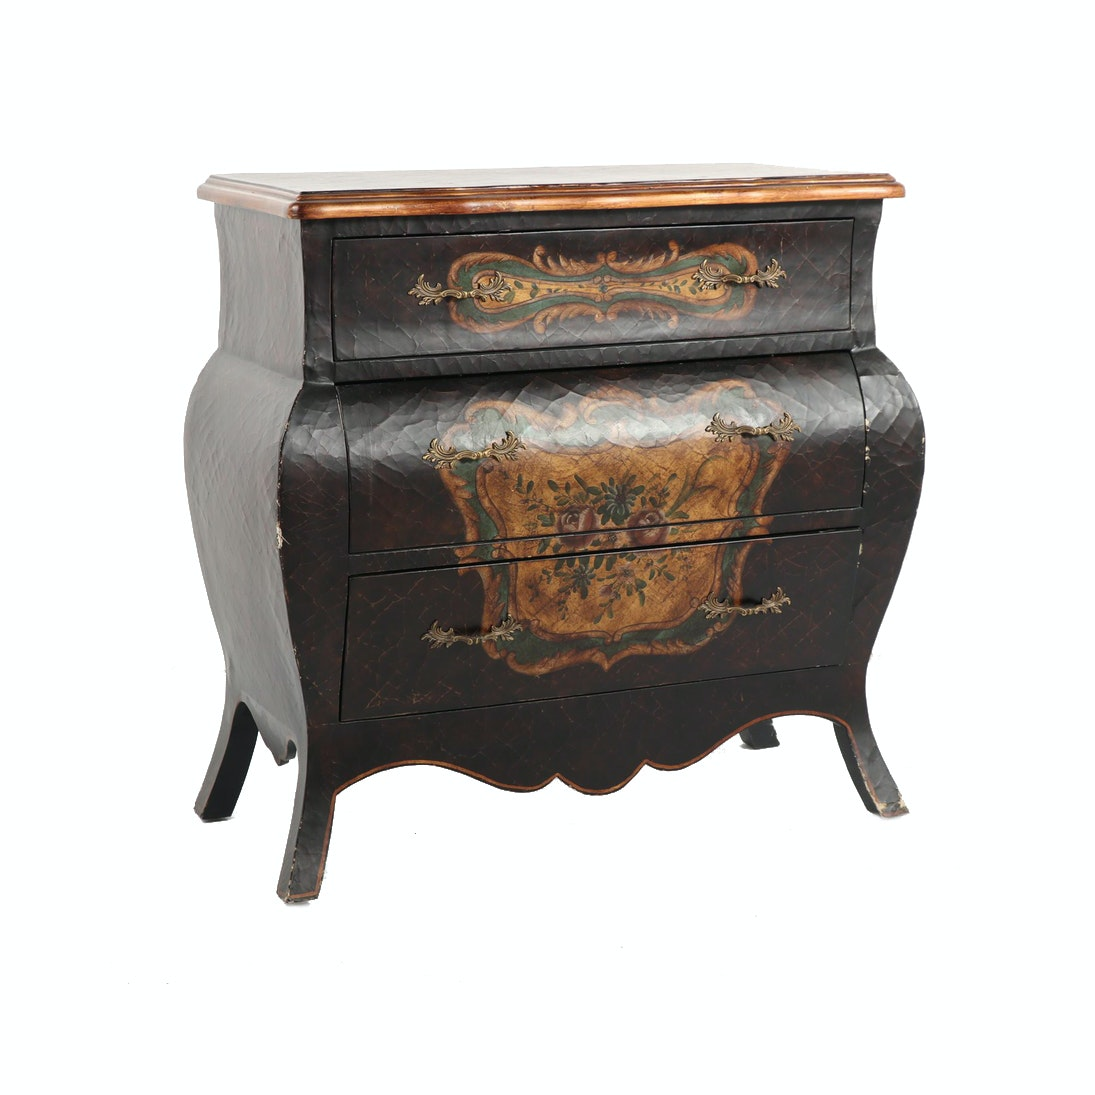 Antiques, Furnishings, Décor & More